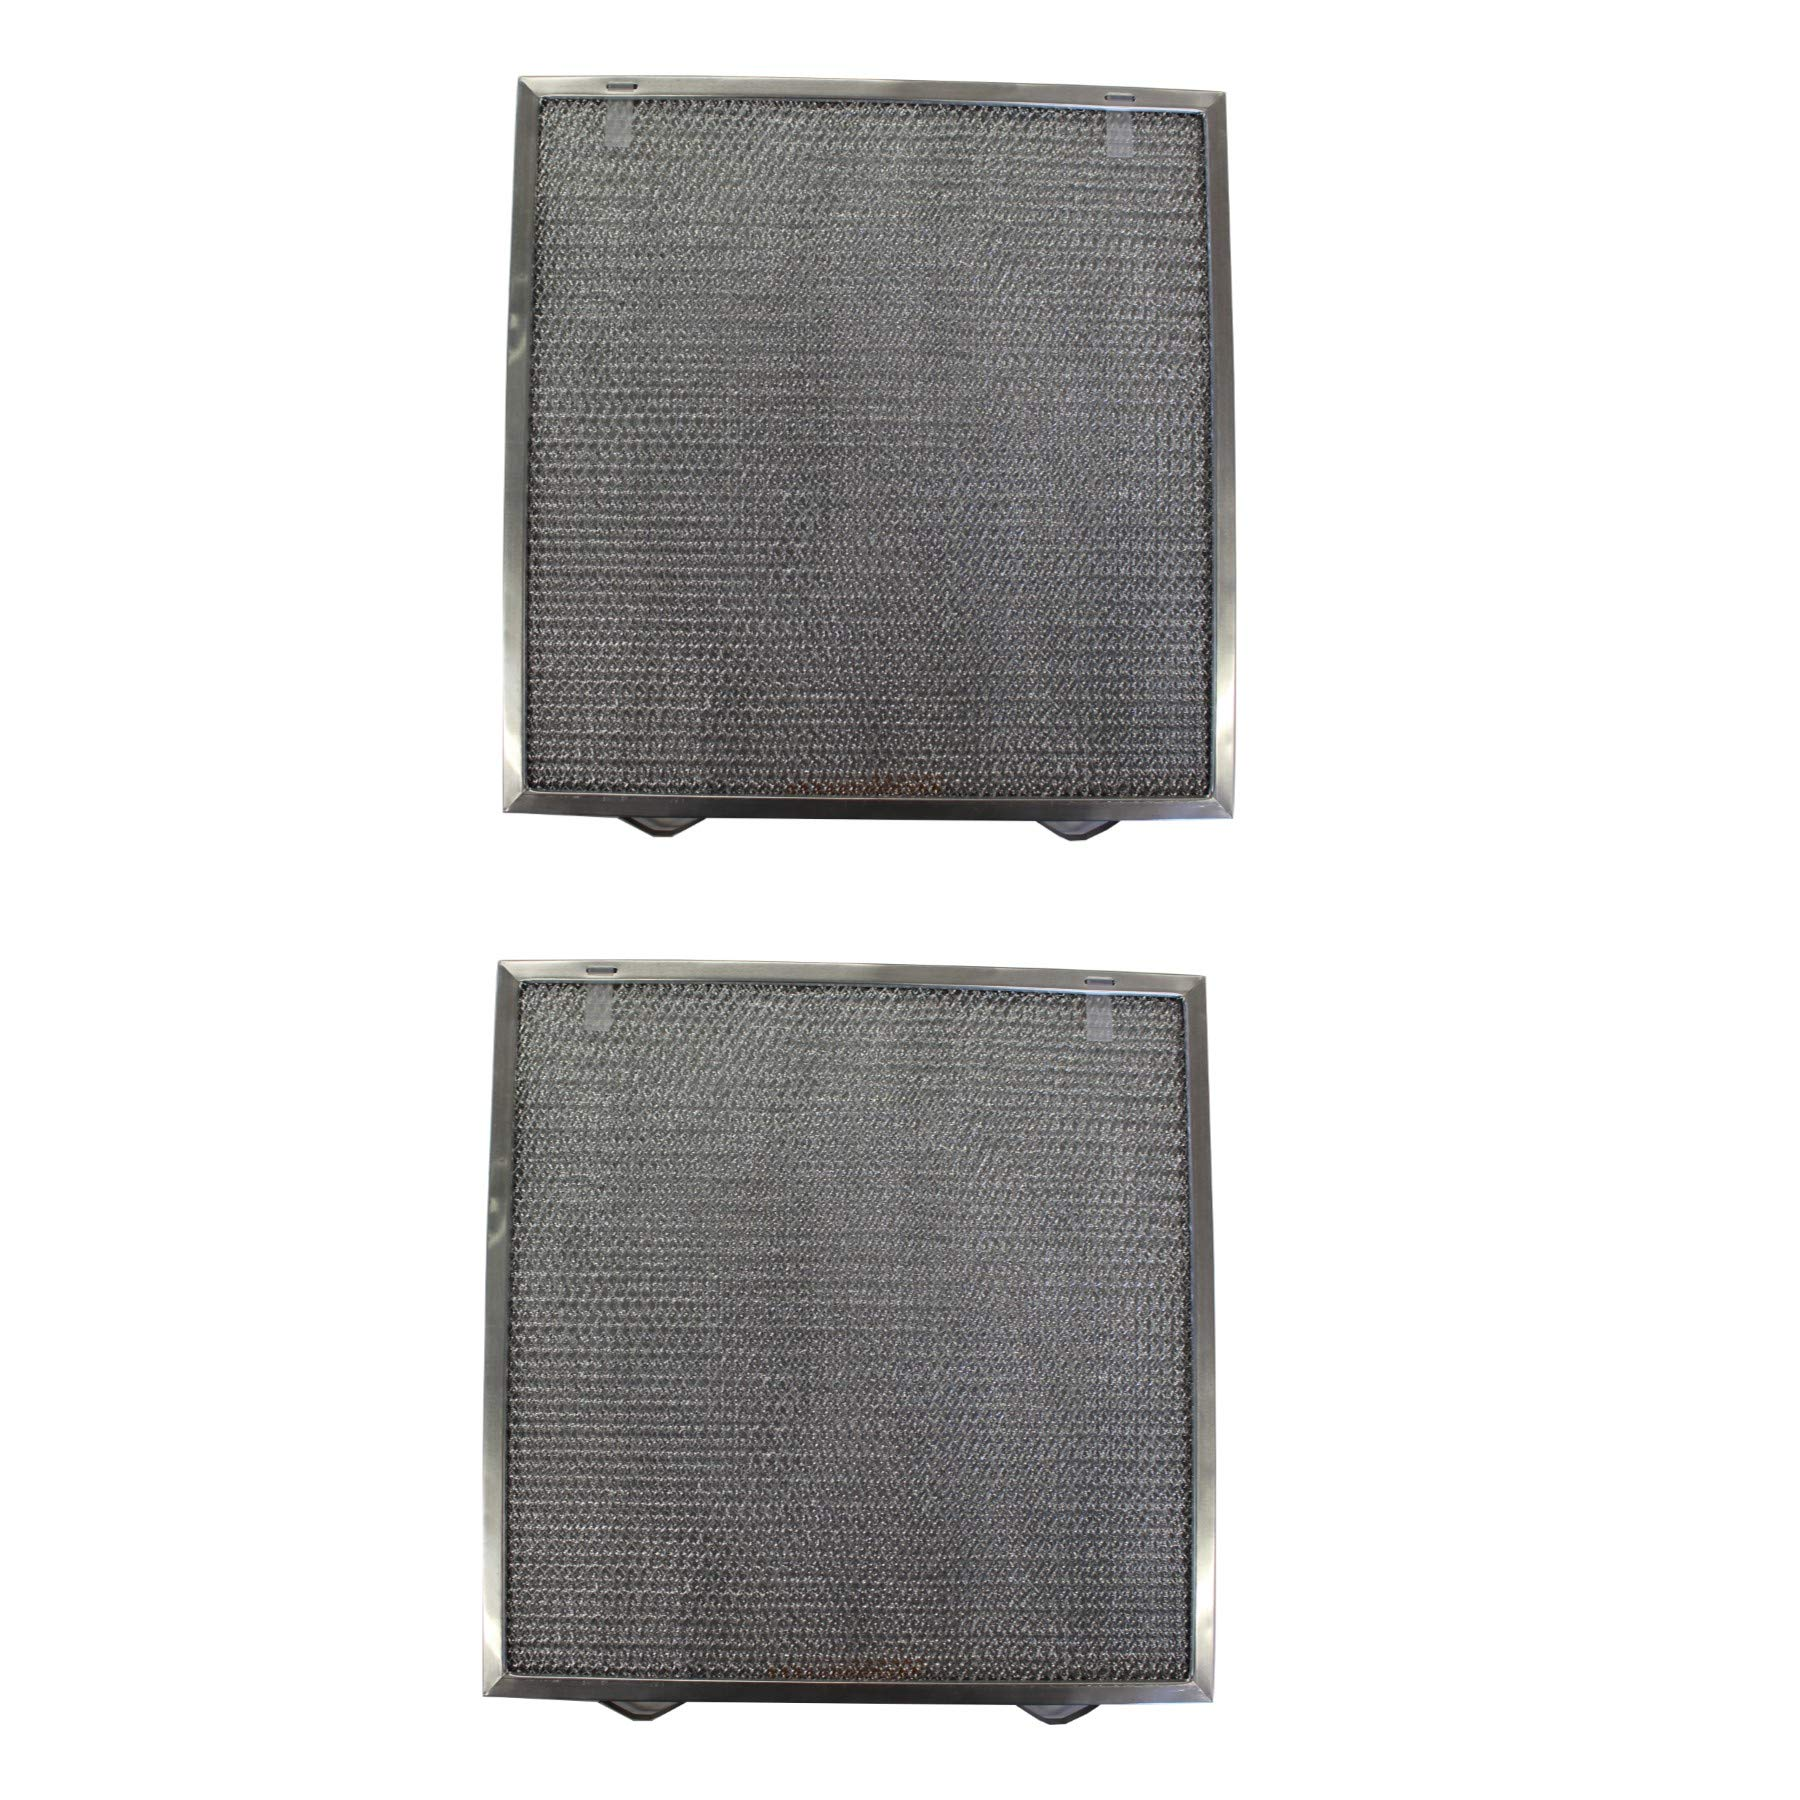 Replacement Aluminum Filters Compatible with Broan S97017415,G 8193,  13 3/4 X 14 X 3/8 (2 PTSS, 2 T